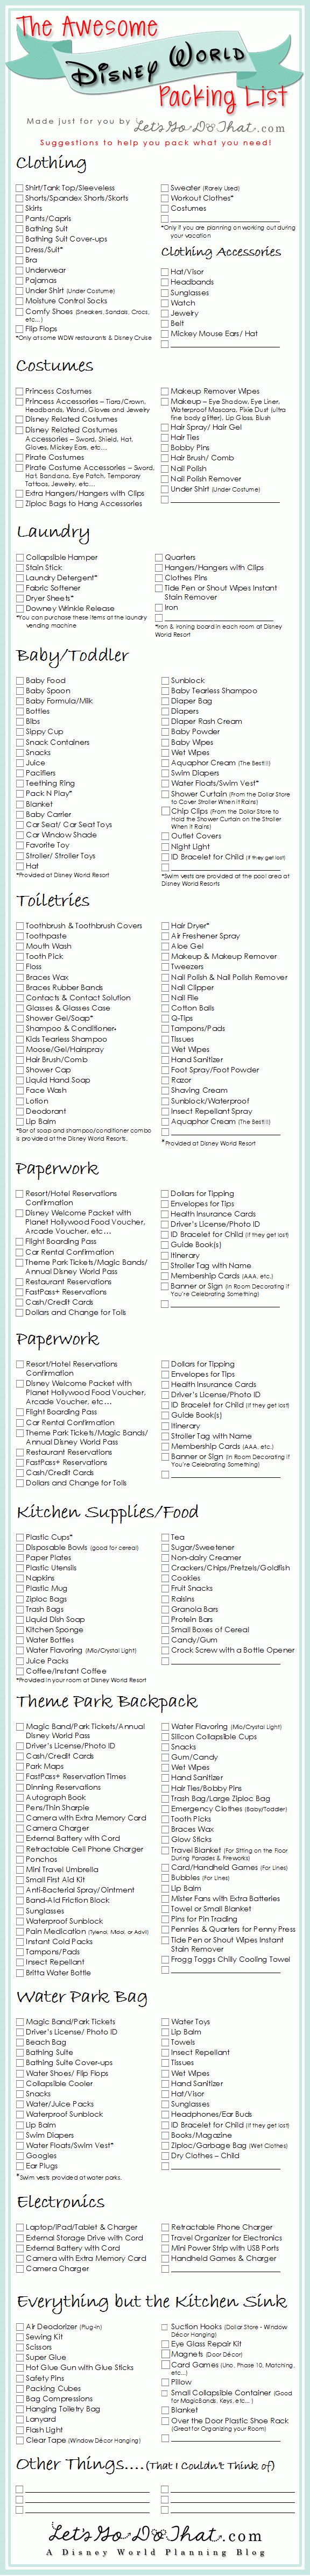 The Awesome Disney World Packing List is just a list of suggestions of what to pack for a Walt Disney World vacation. It does not mean that you have to take everything on the list. You might have to rent a mini trailer if you take everything on this list.